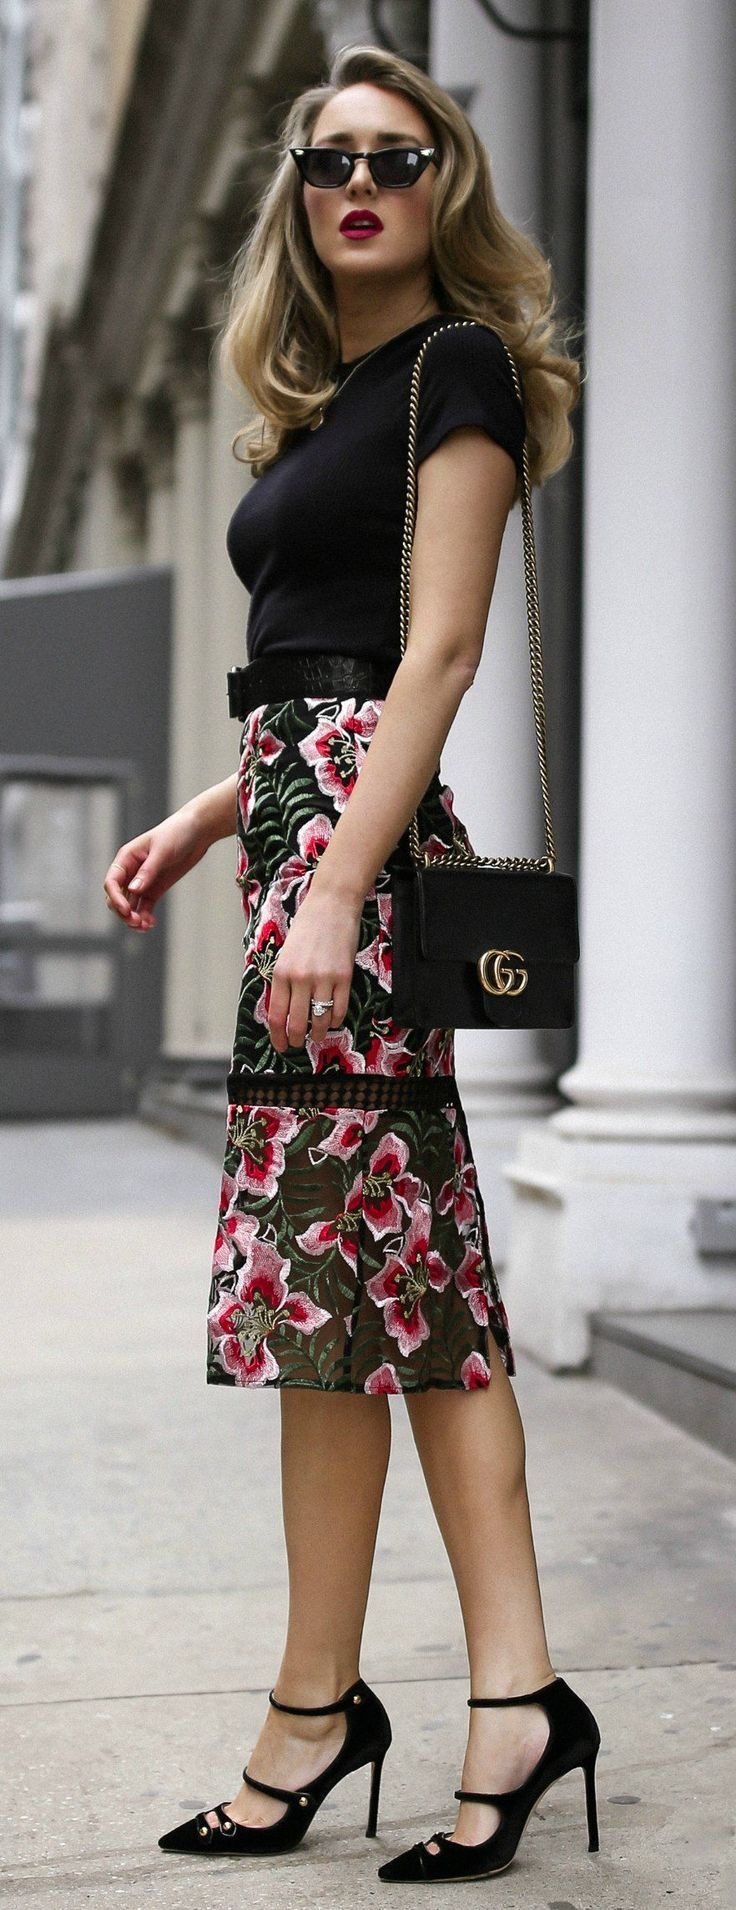 The Perfect Transition Piece: Dark Floral Skirt // Dark floral midi pencil skirt, black short sleeved tee shirt, black embossed waist belt, black patent leather mary jane pumps, black shoulder bag with chain, black retro sunglasses {Gucci, Jimmy Choo, Ant